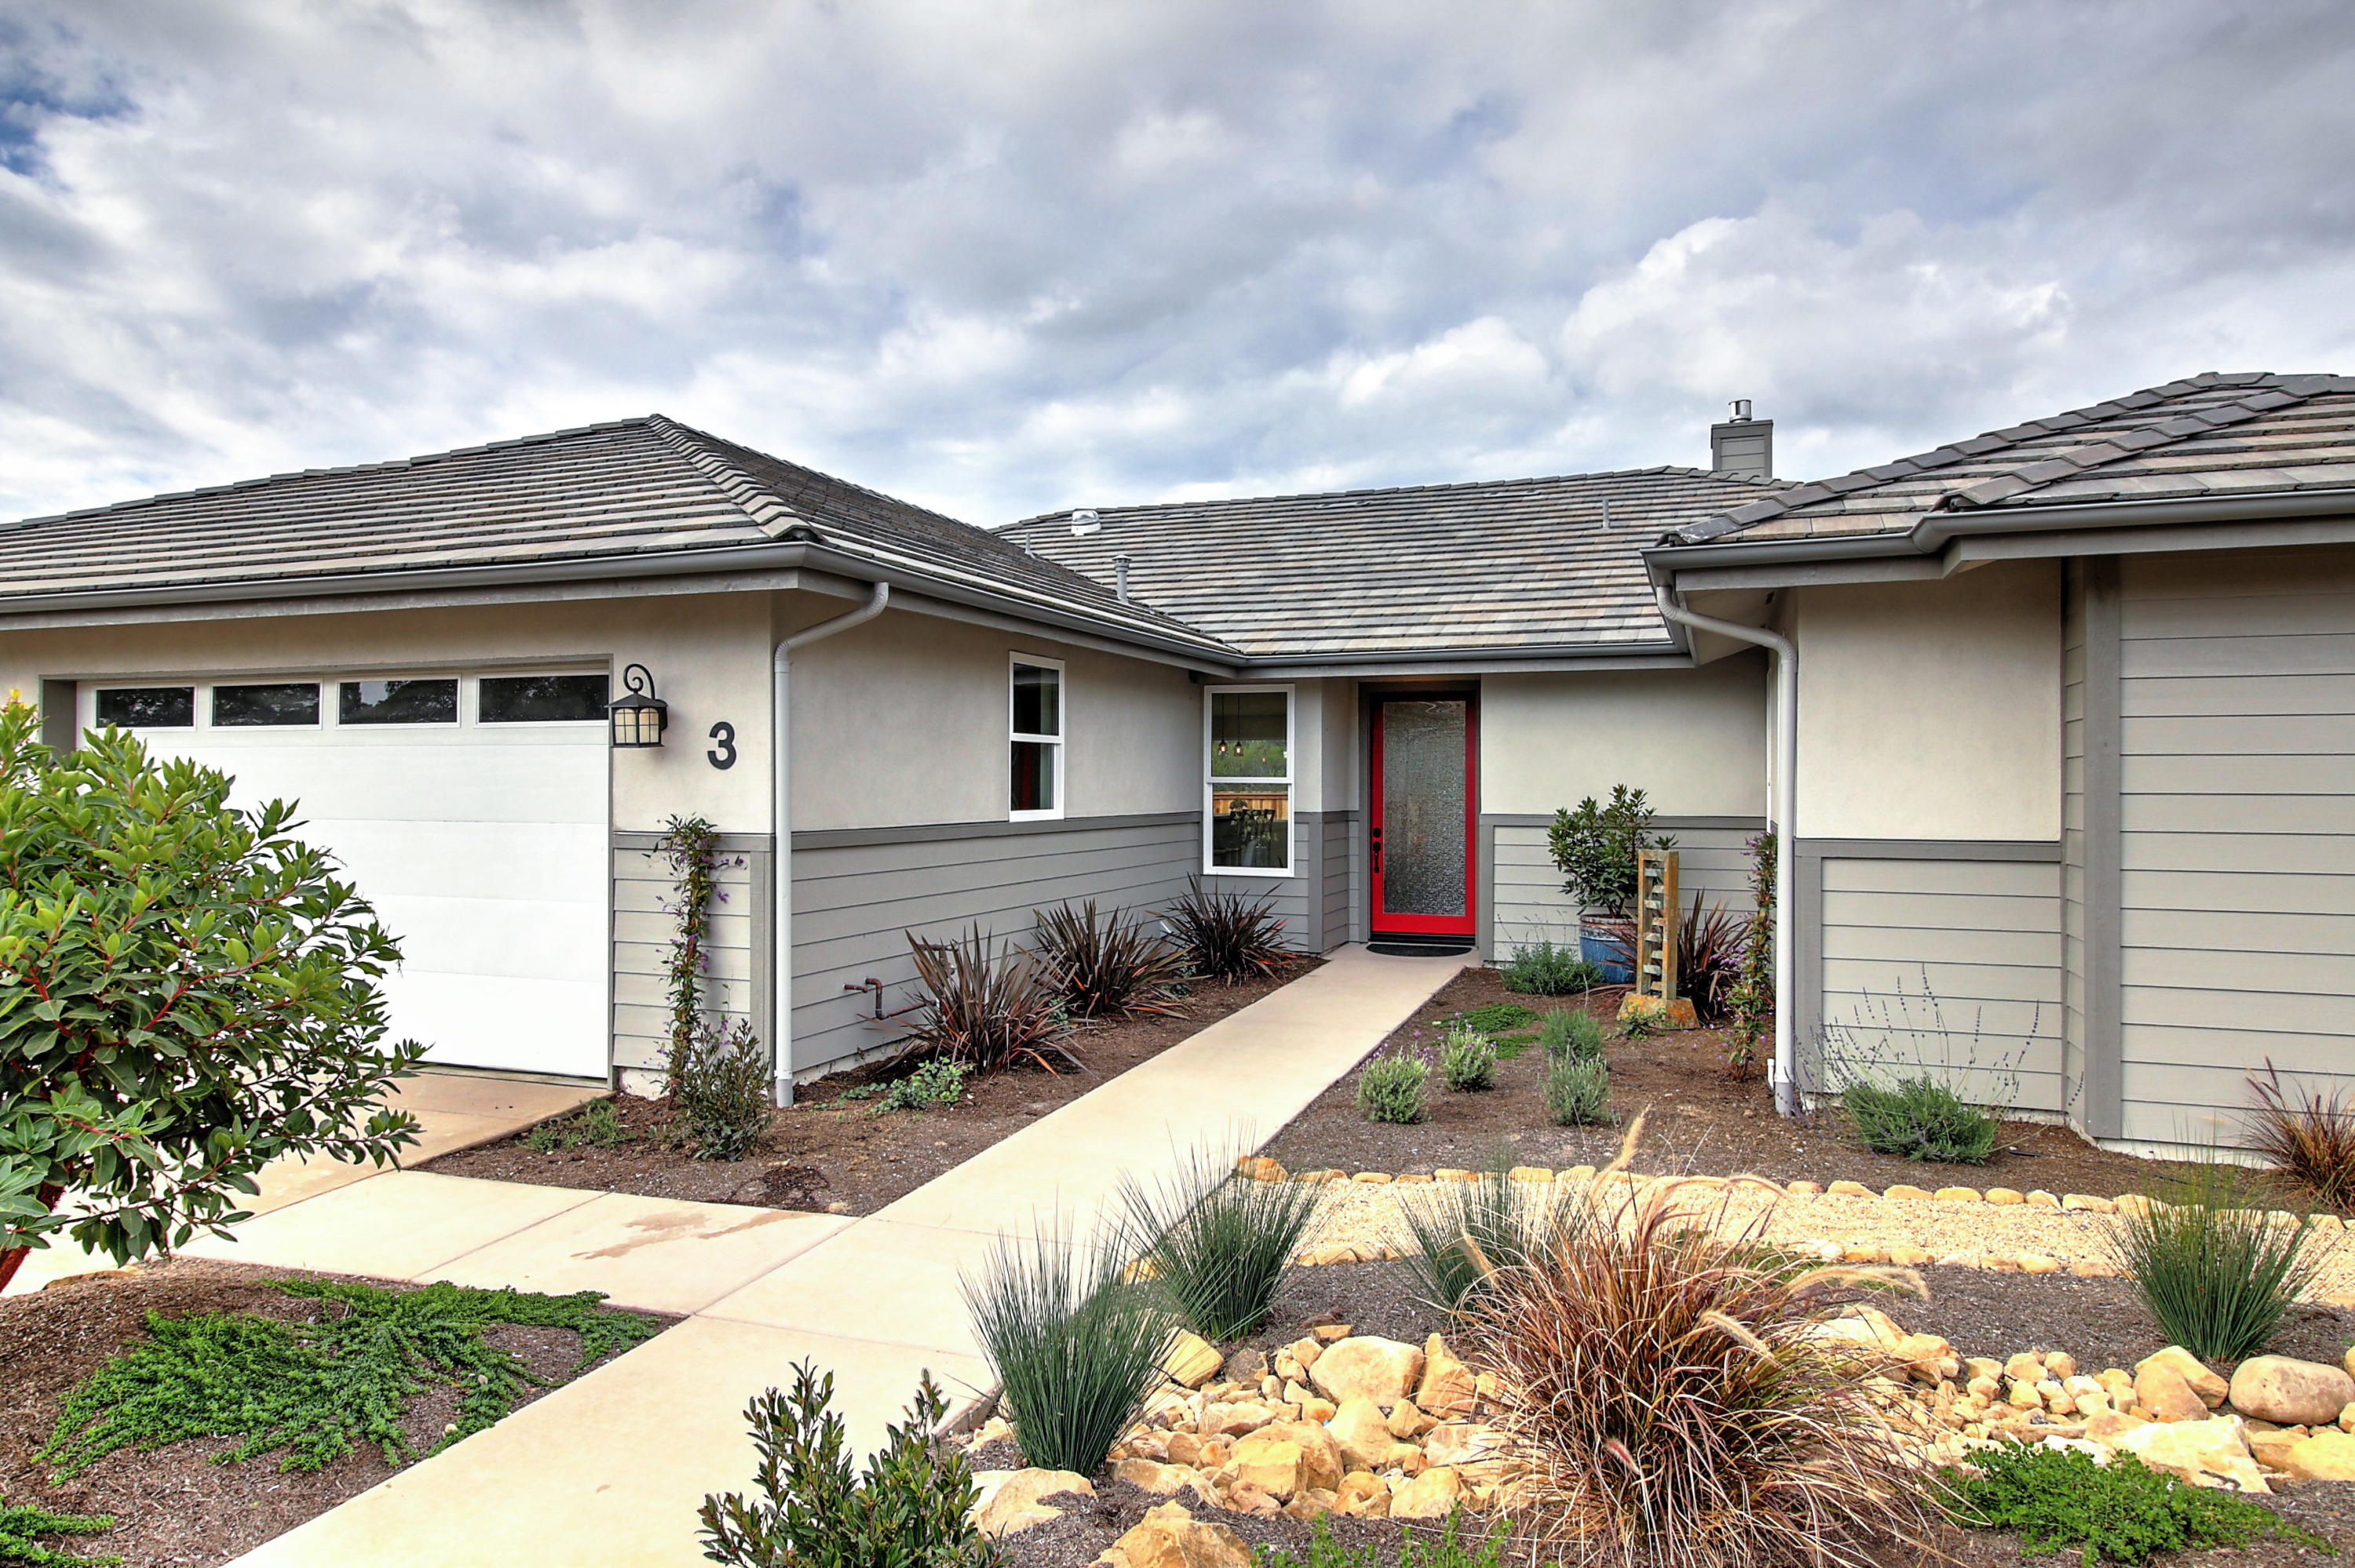 Property photo for 3 Baker Ln Goleta, California 93117 - 18-547